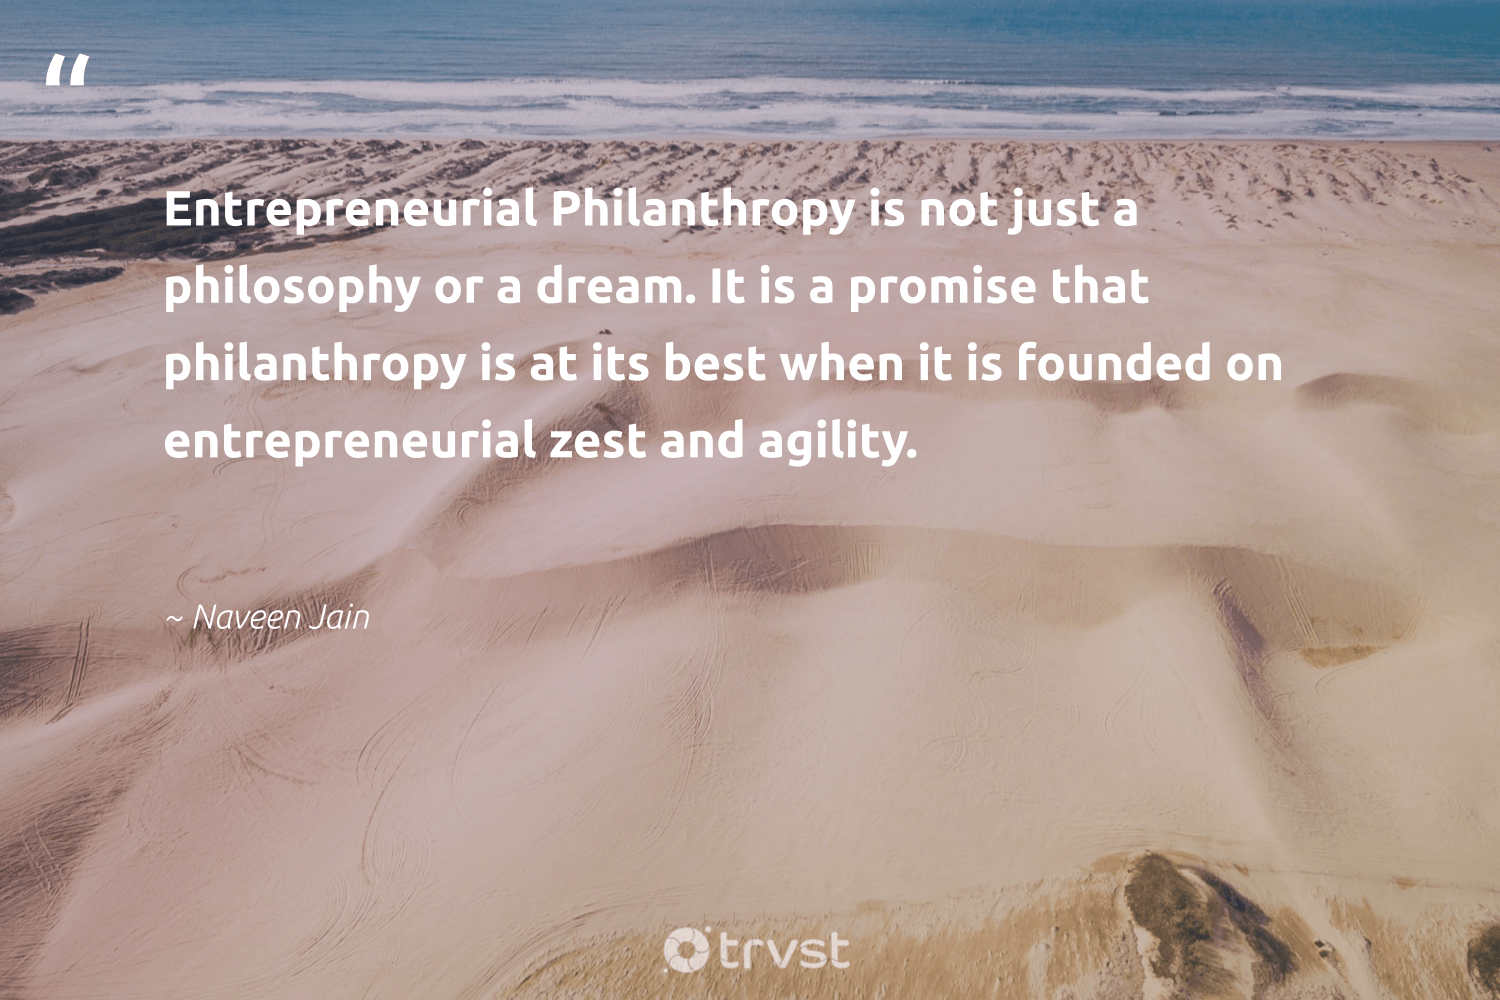 """Entrepreneurial Philanthropy is not just a philosophy or a dream. It is a promise that philanthropy is at its best when it is founded on entrepreneurial zest and agility.""  - Naveen Jain #trvst #quotes #philanthropy #philanthropic #giveforthefuture #togetherwecan #impact #itscooltobekind #changemakers #socialchange #collectiveaction #thinkgreen"